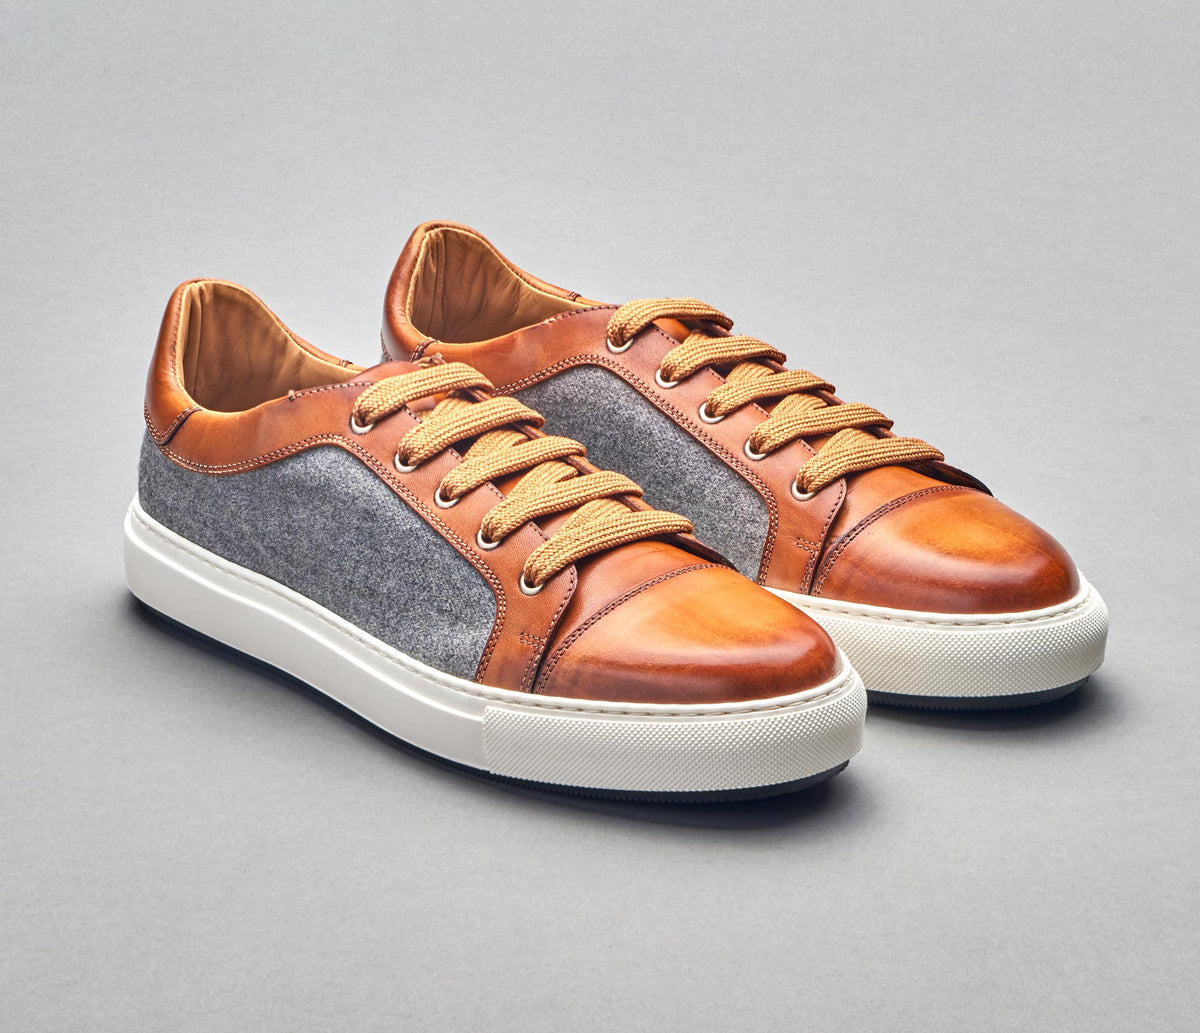 3cf354ba918b SB646 Deco Dress Sneaker in Tan Oslo 4